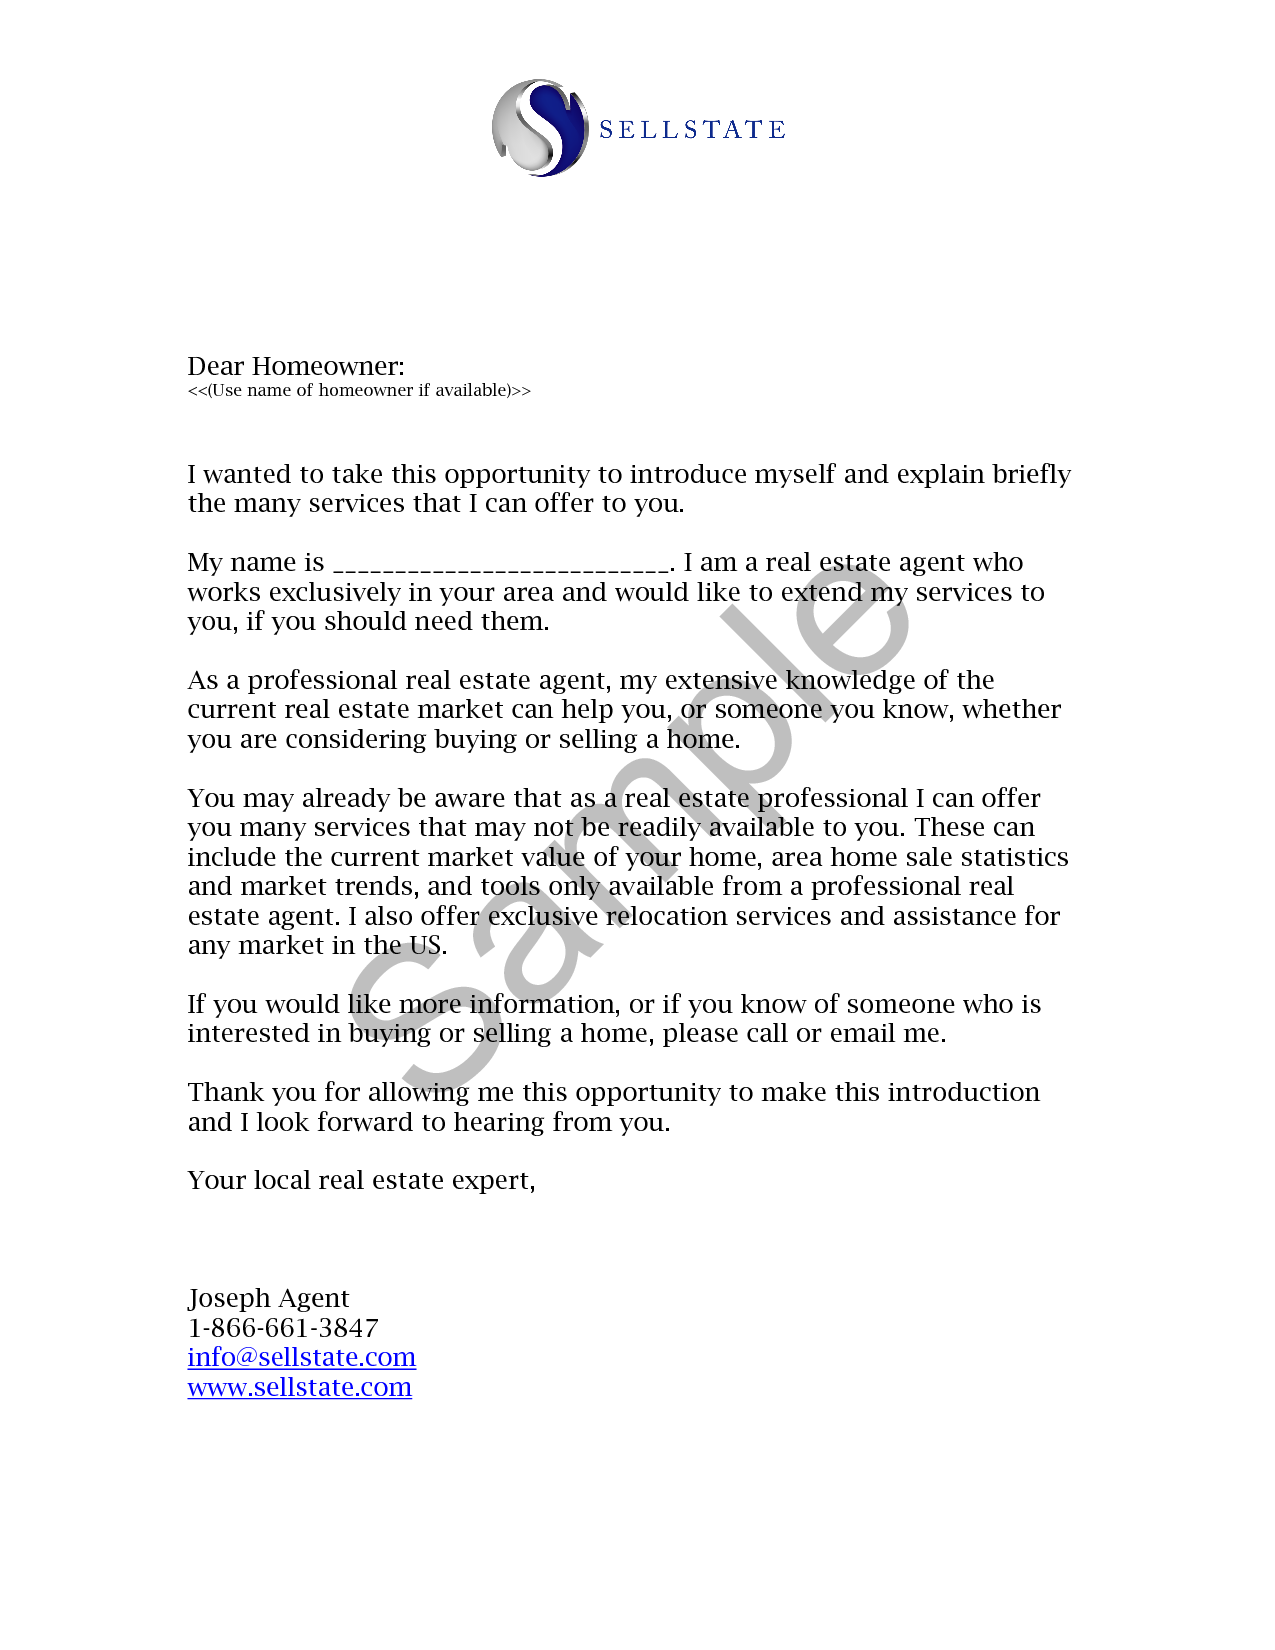 real cover letters that worked - real estate letters of introduction introduction letter